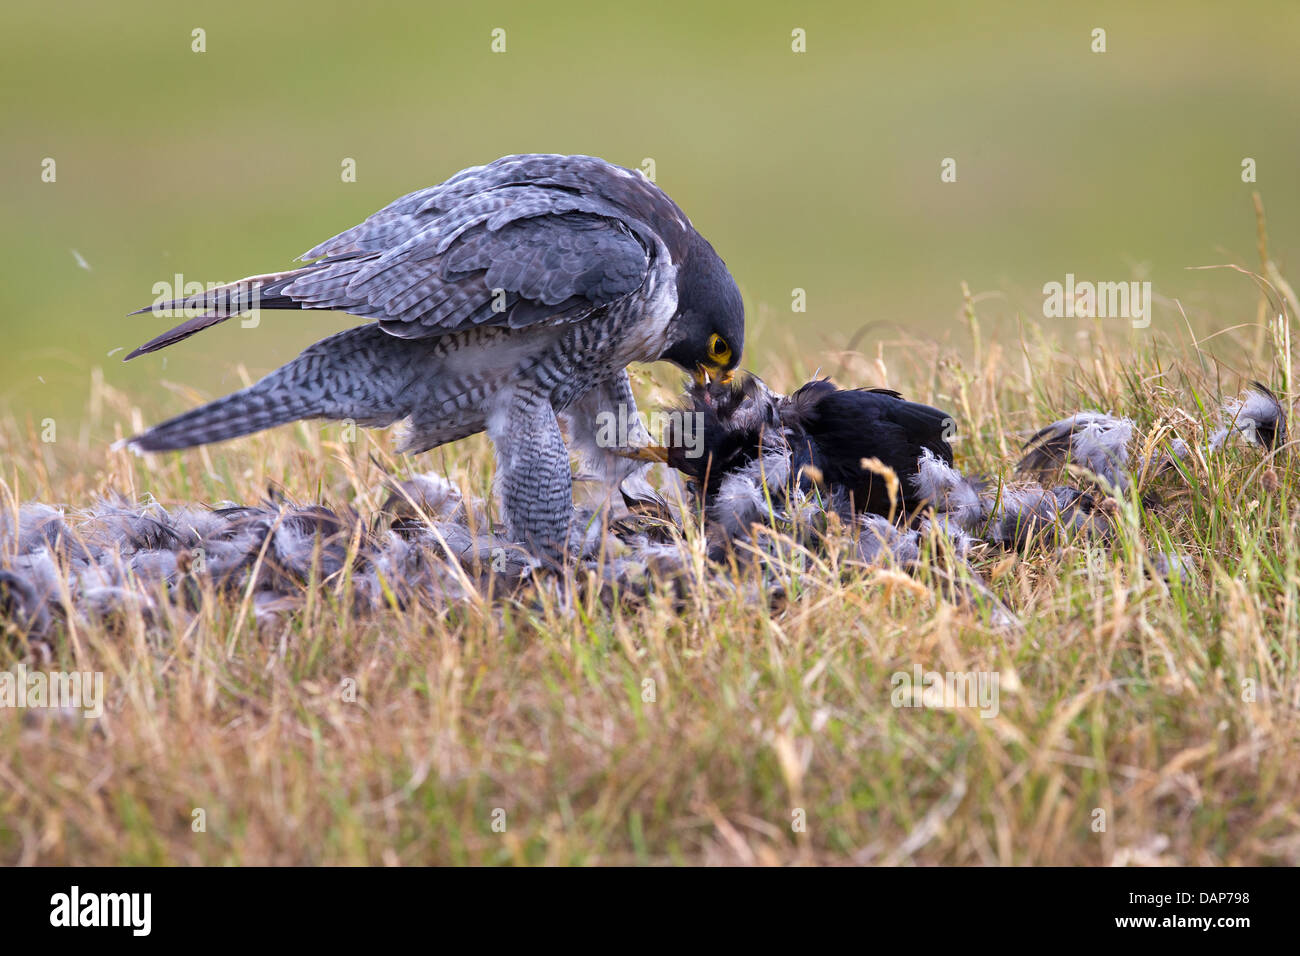 Male Peregrine Falcon with its prey - Stock Image